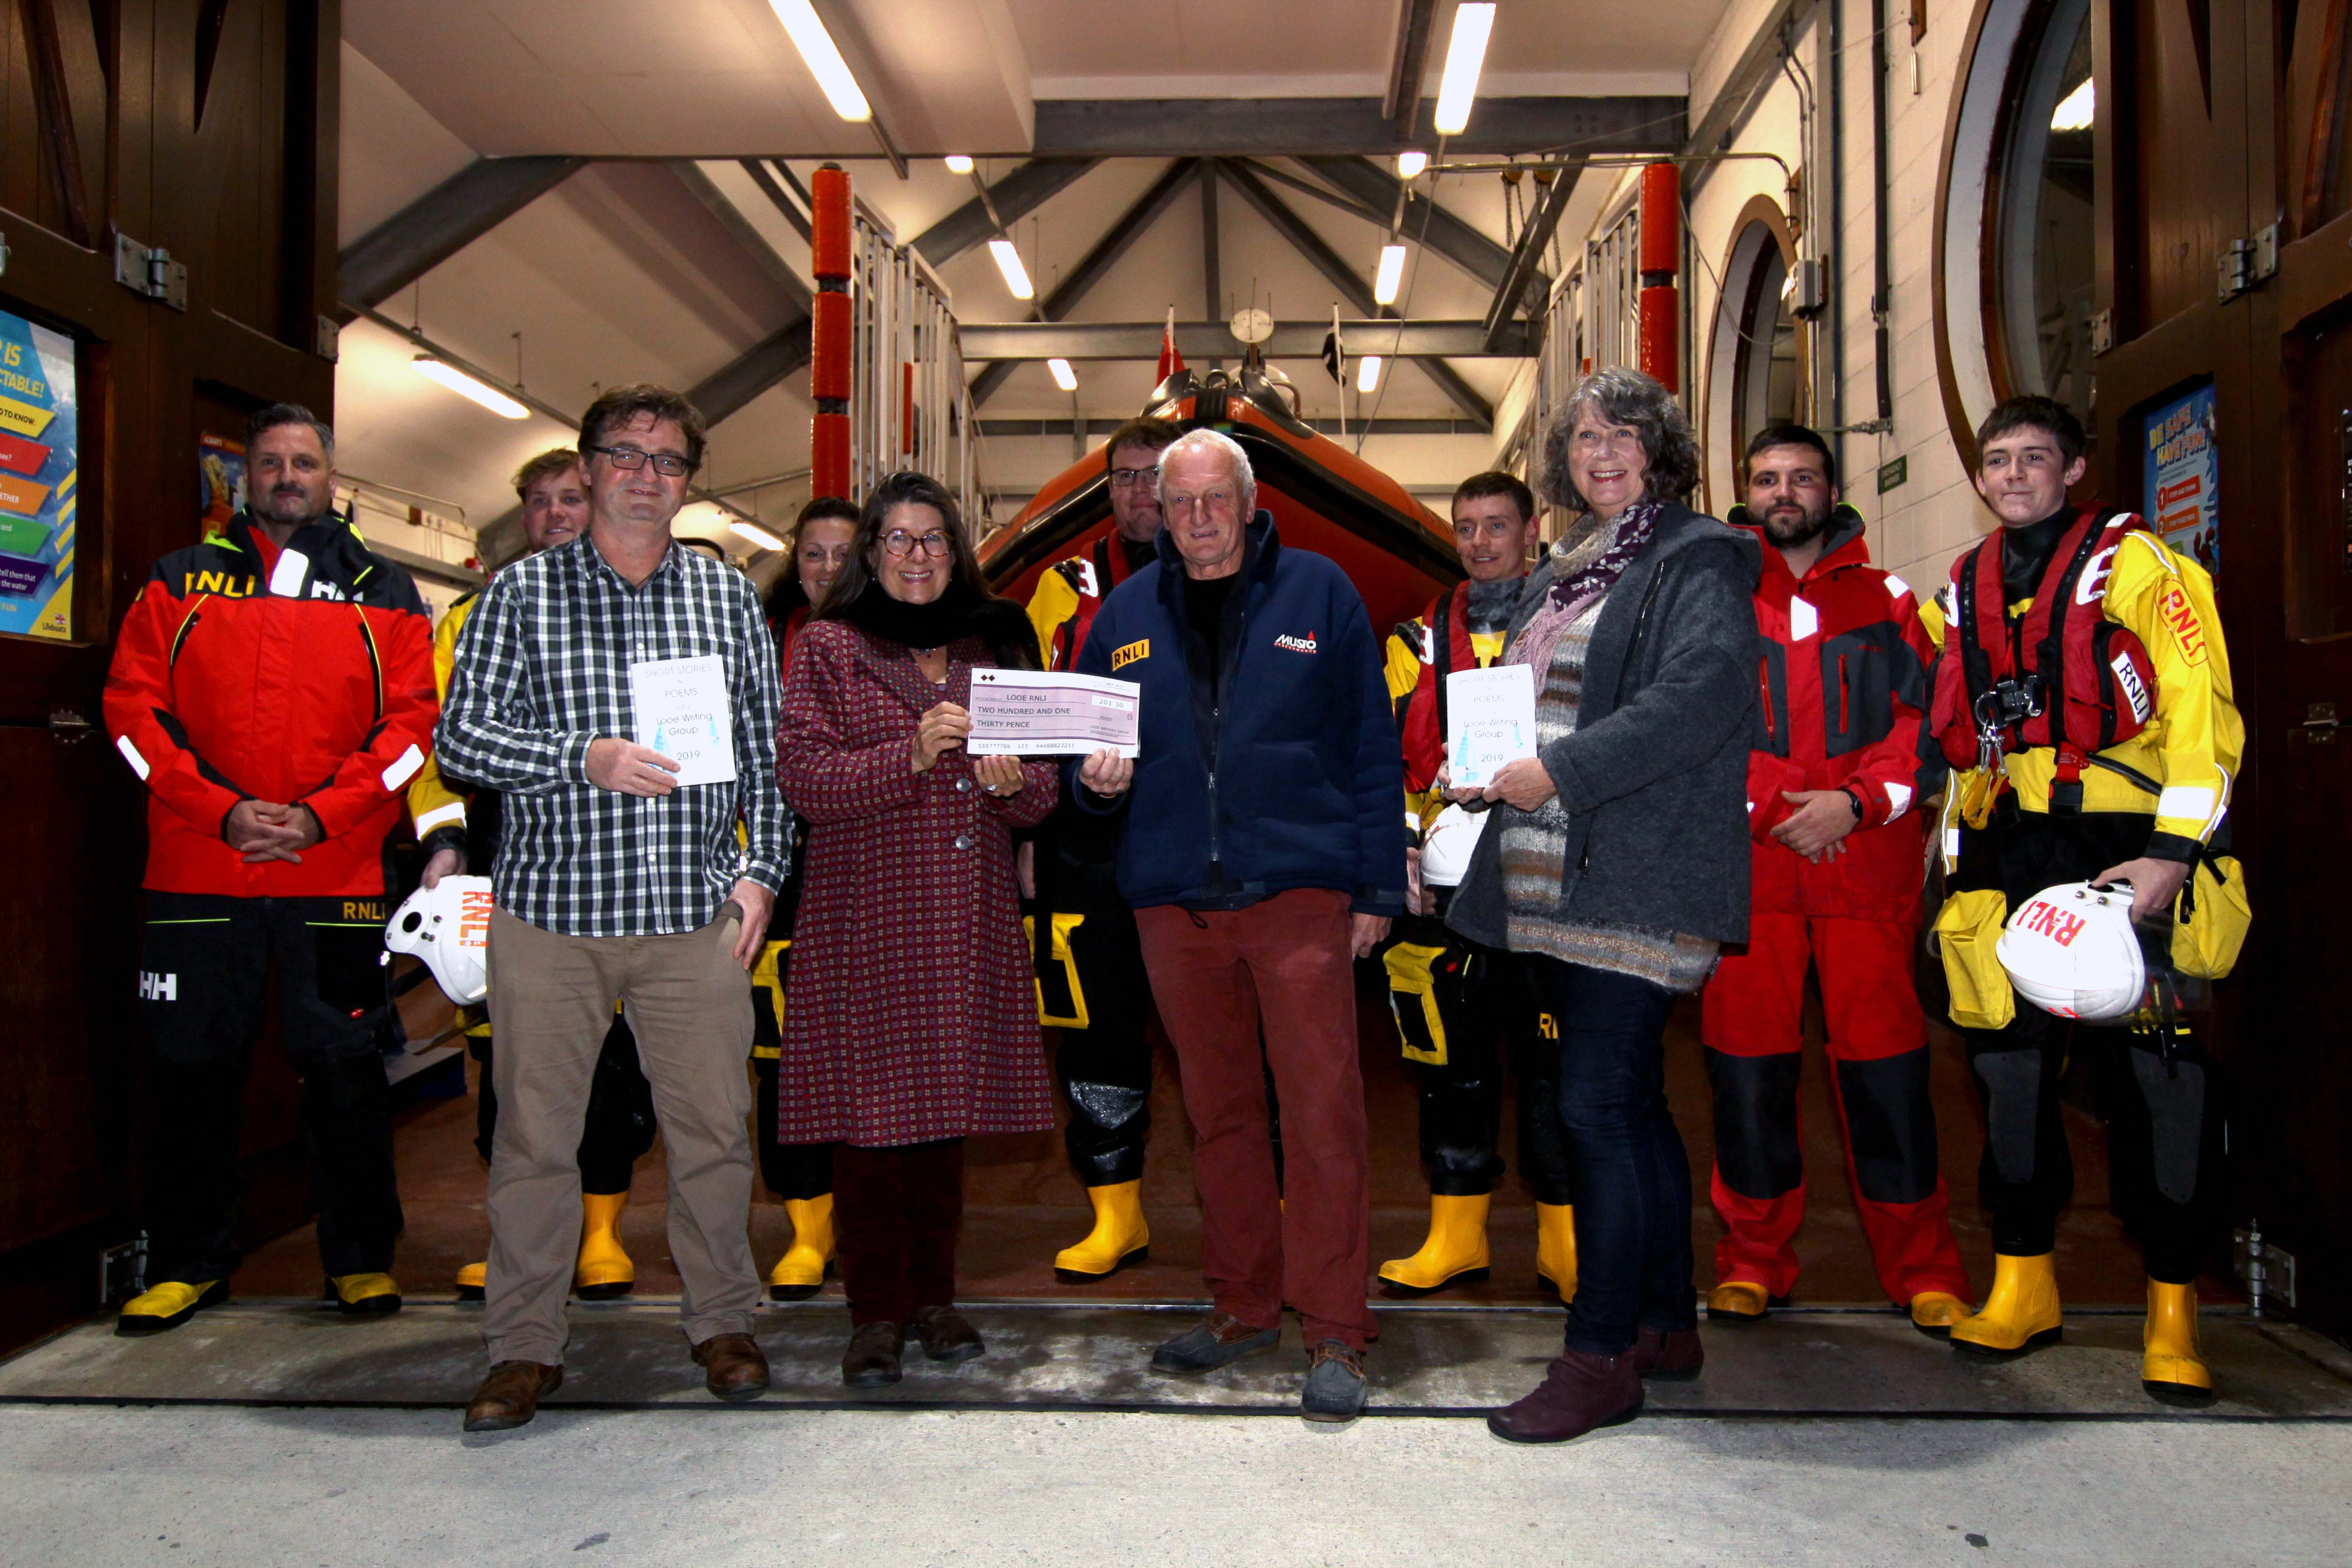 Cheque presentation by Jane Malcolm, Looe Writers Group to Dave Haines Looe RNLI with Jim Rickard, Viv Bennett and Looe RNLI volunteers crew